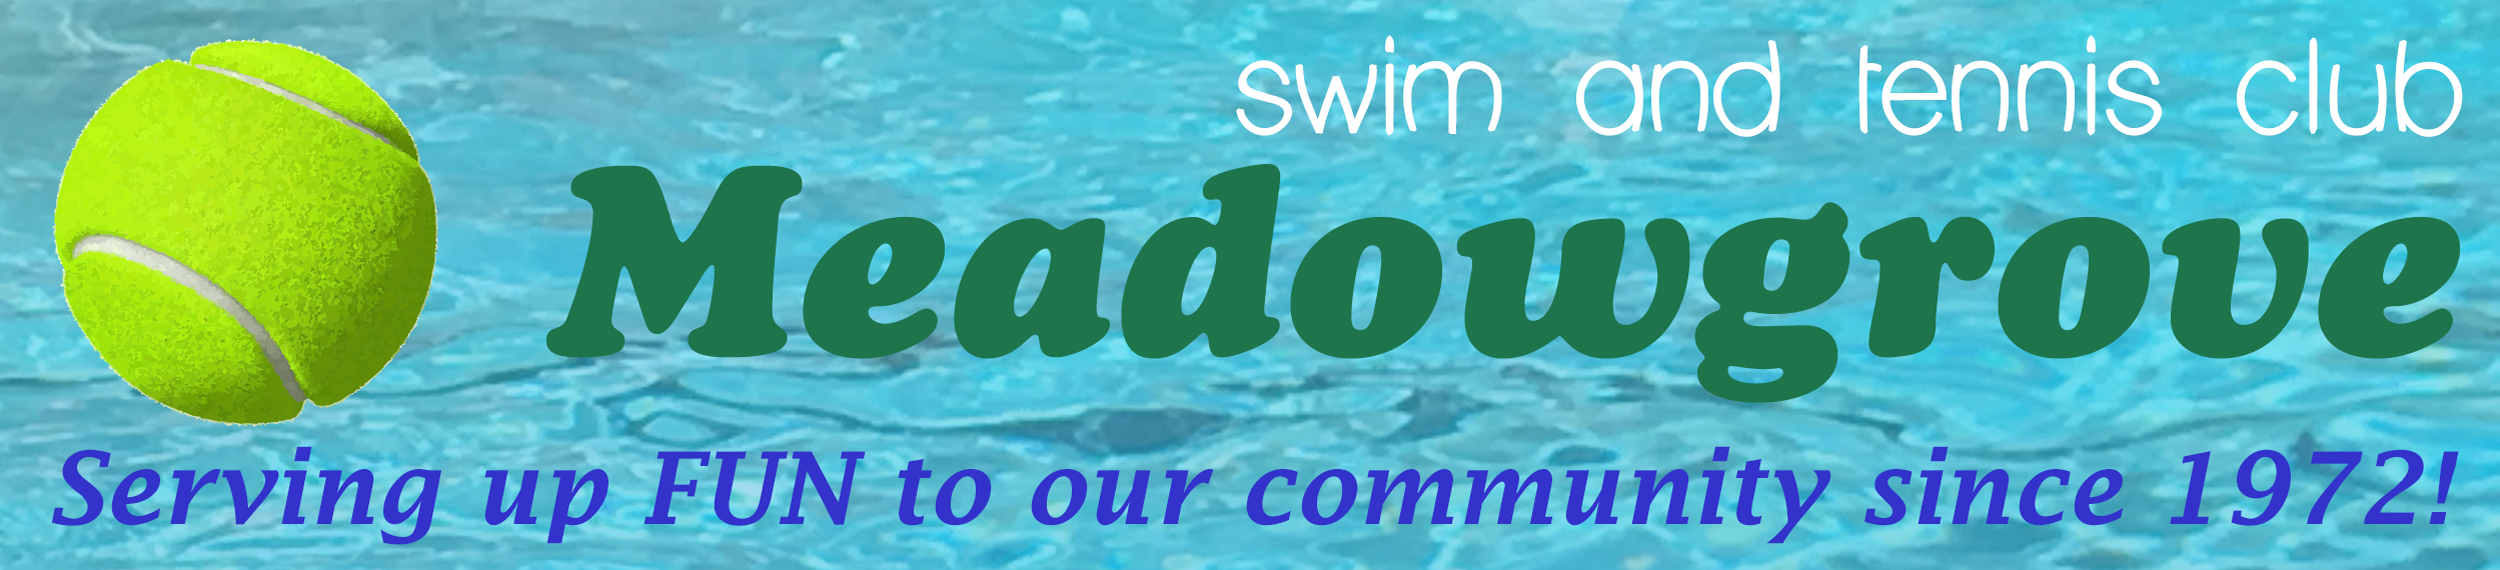 Meadowgrove Swim & Tennis Club